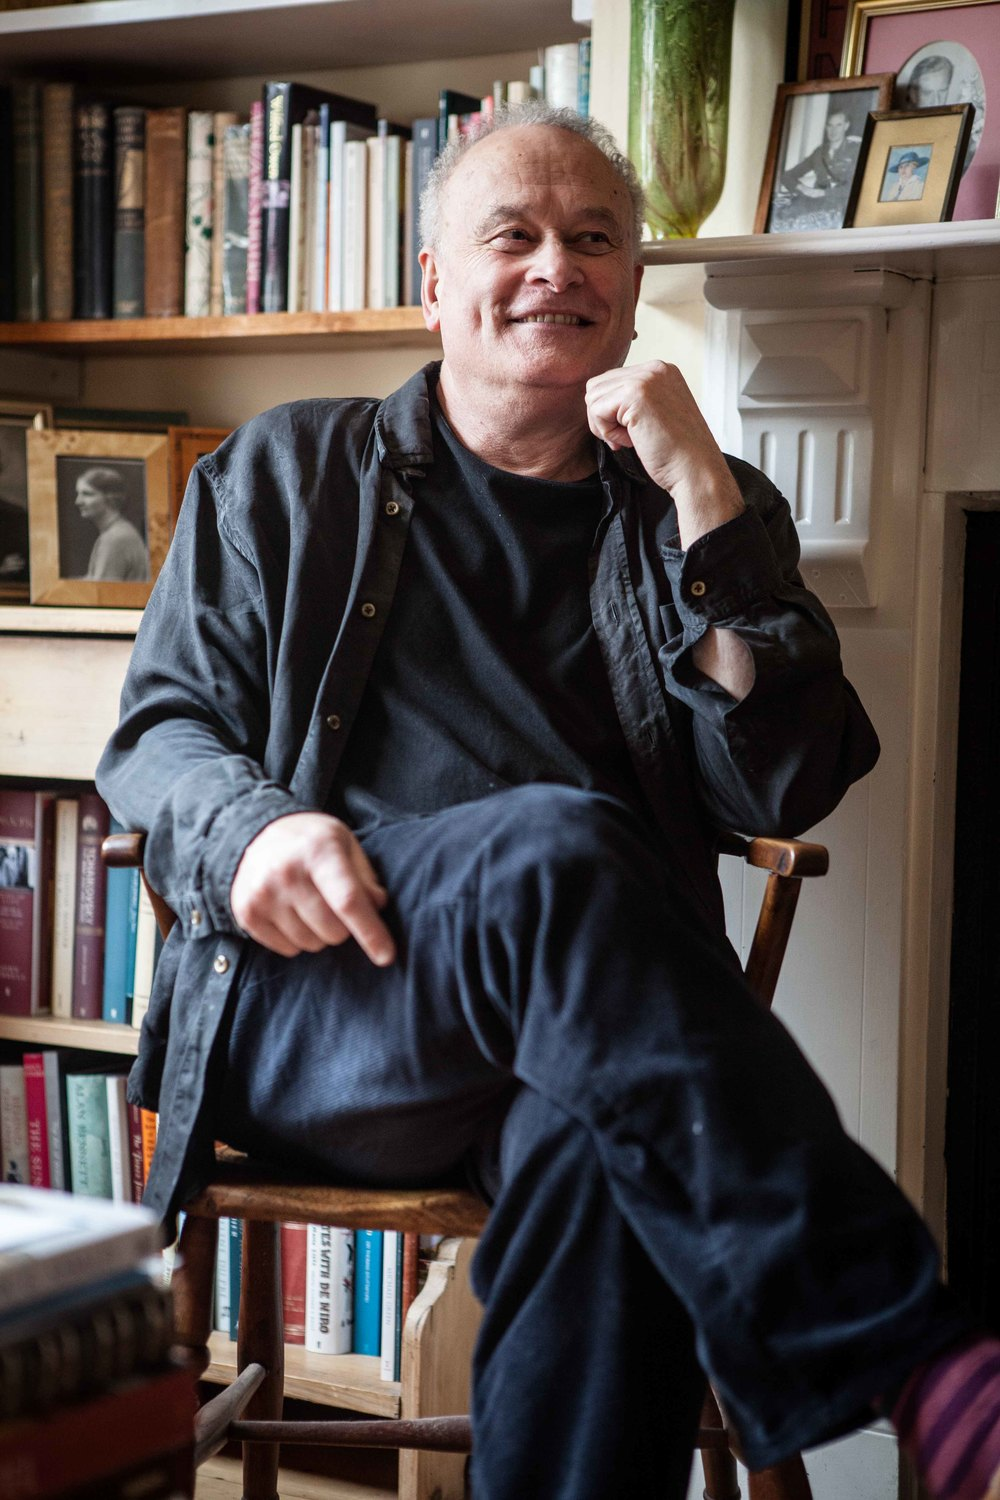 Colin Matthews OBE at home by Fiona Garden 2014